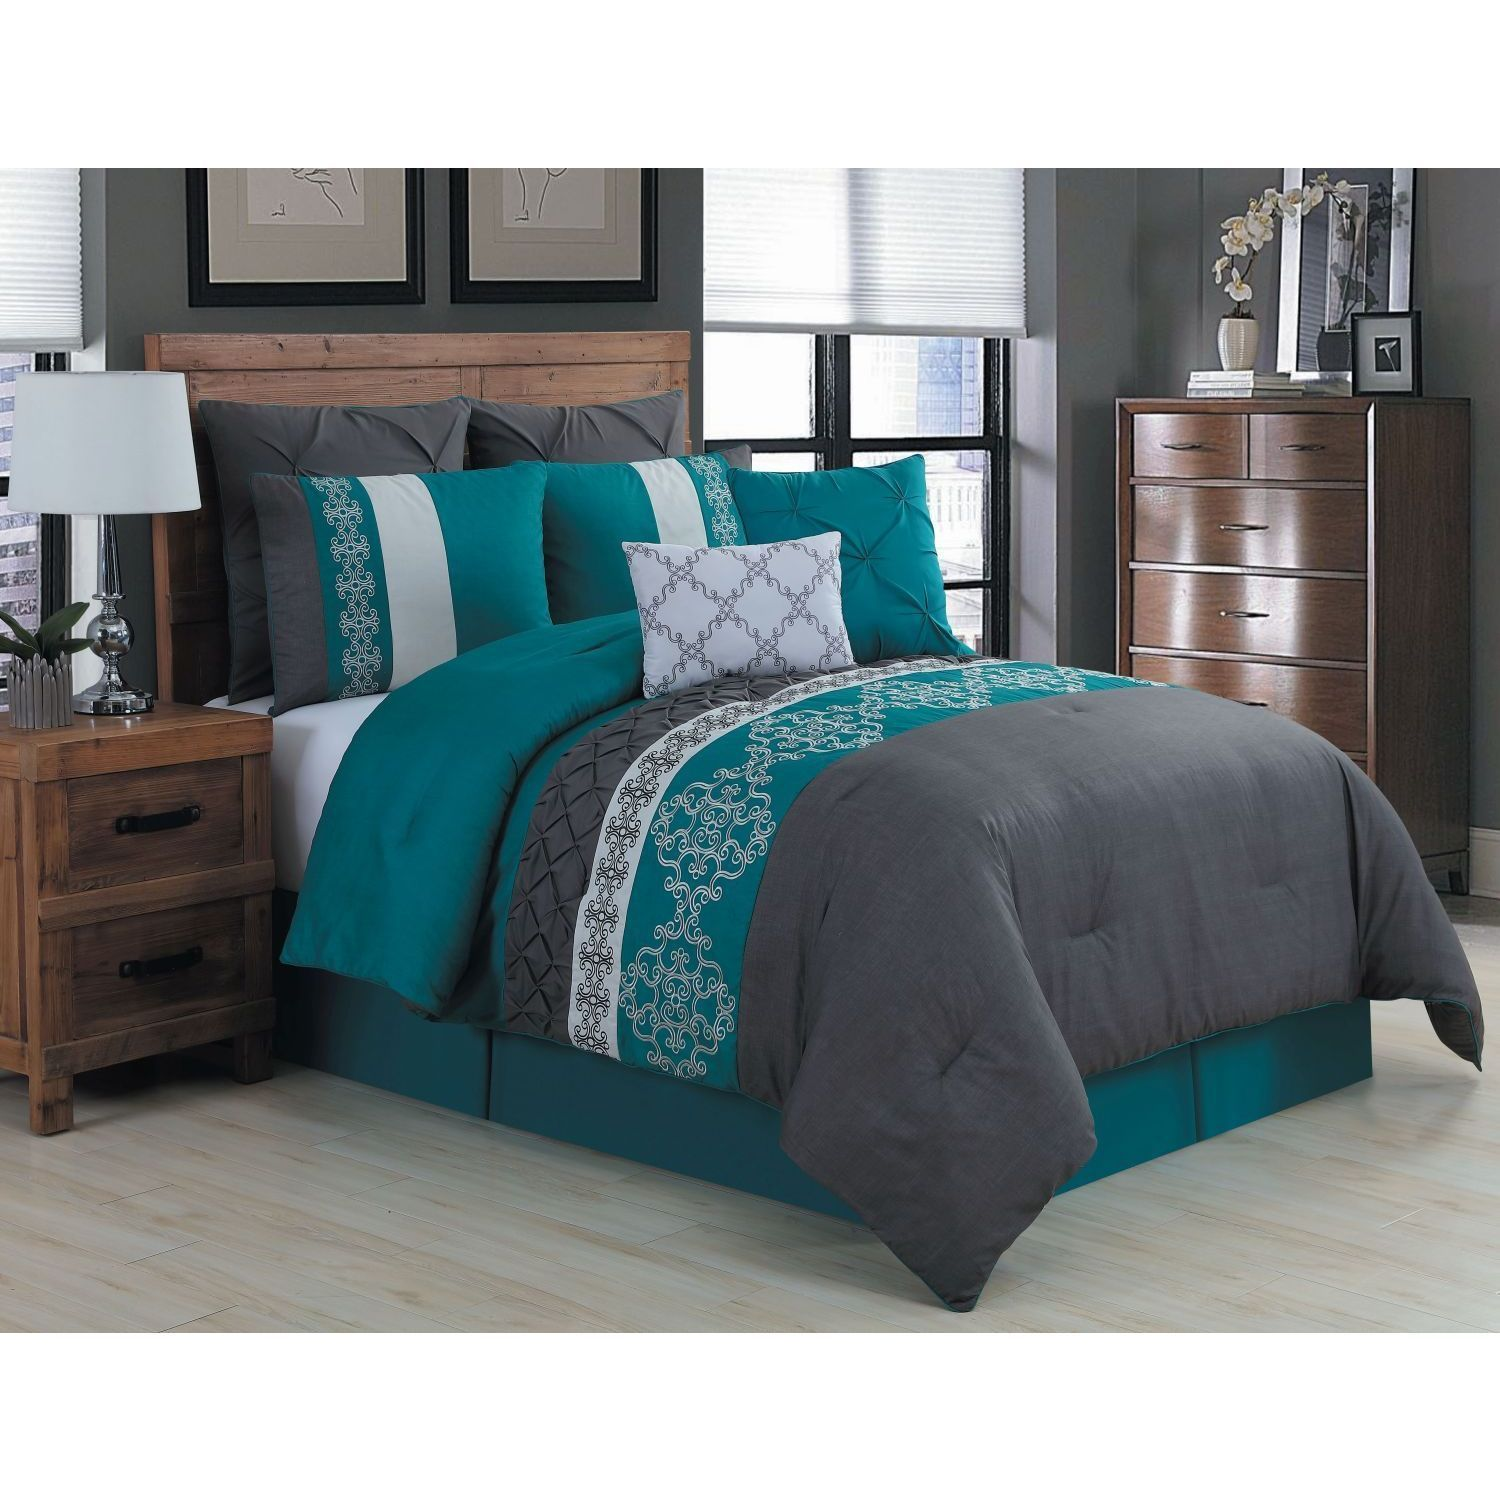 Order Furniture Online Free Shipping: Comforter Sets: Free Shipping On Orders Over $45! Bring